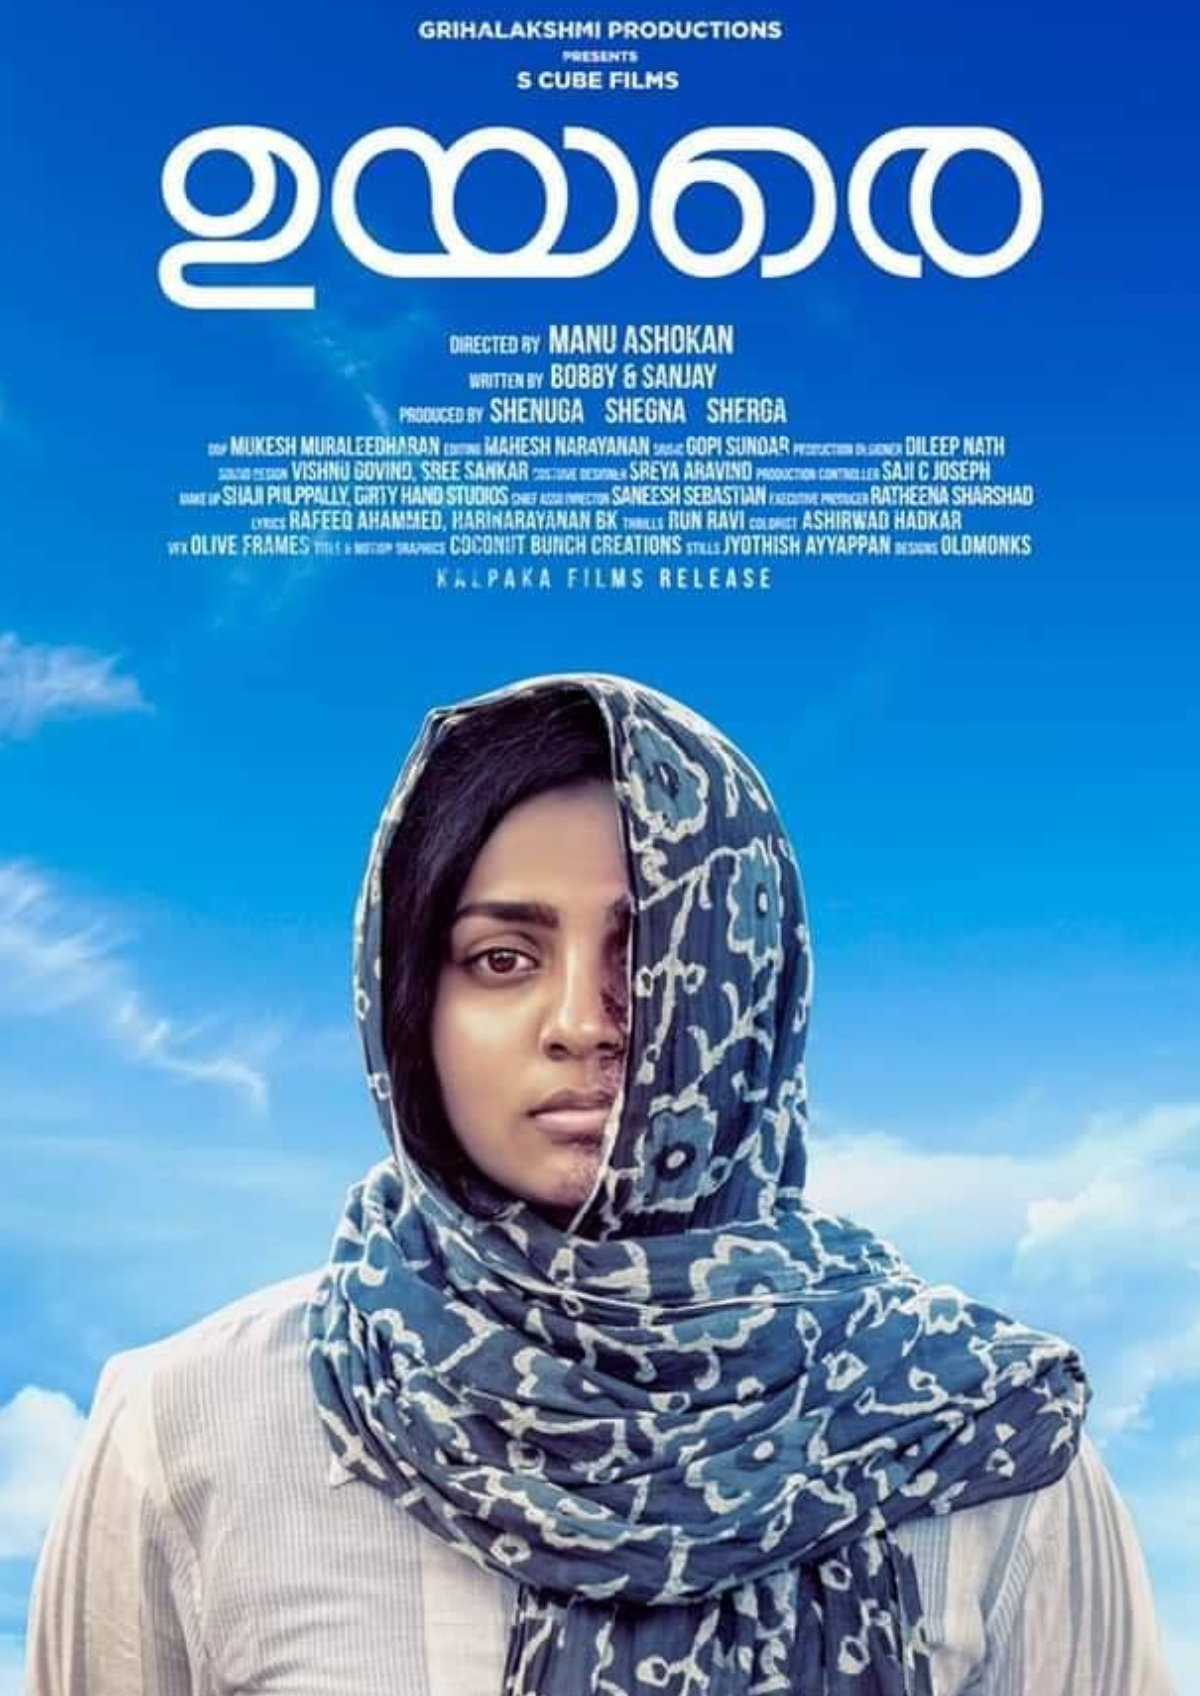 'Uyare' movie poster